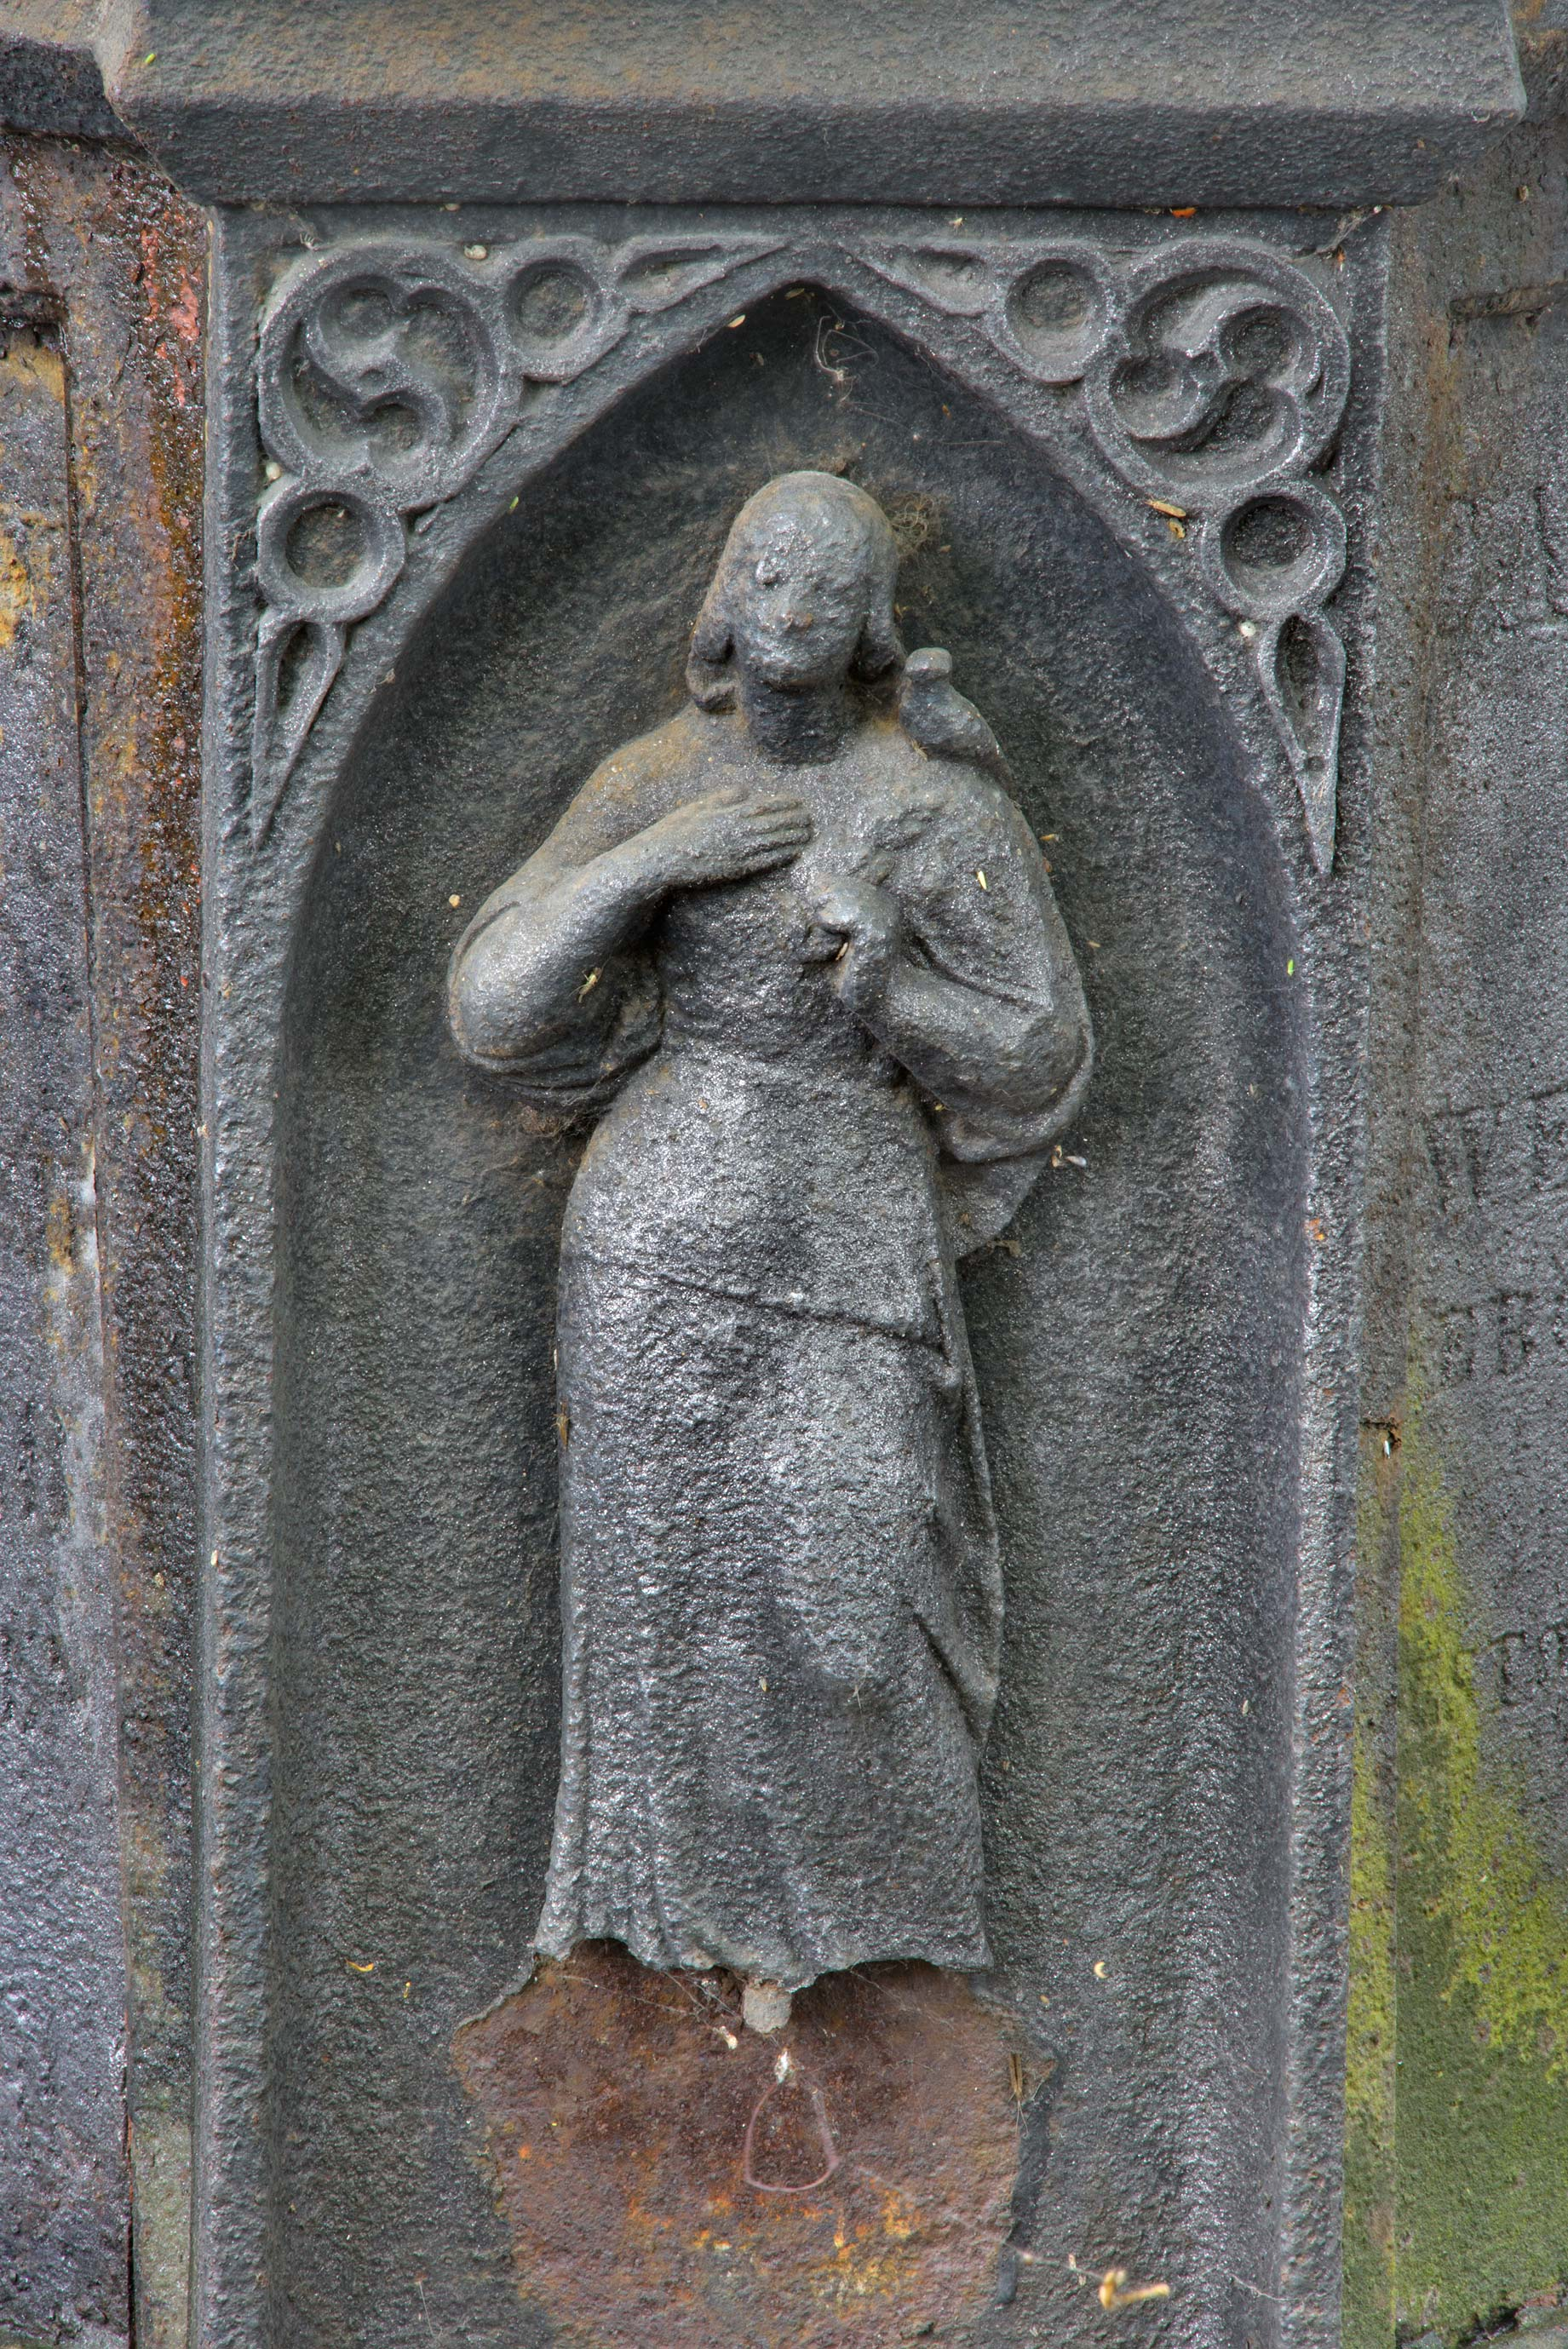 Levitating iron figure on a tomb in Necropolis of...Cemetery). St.Petersburg, Russia